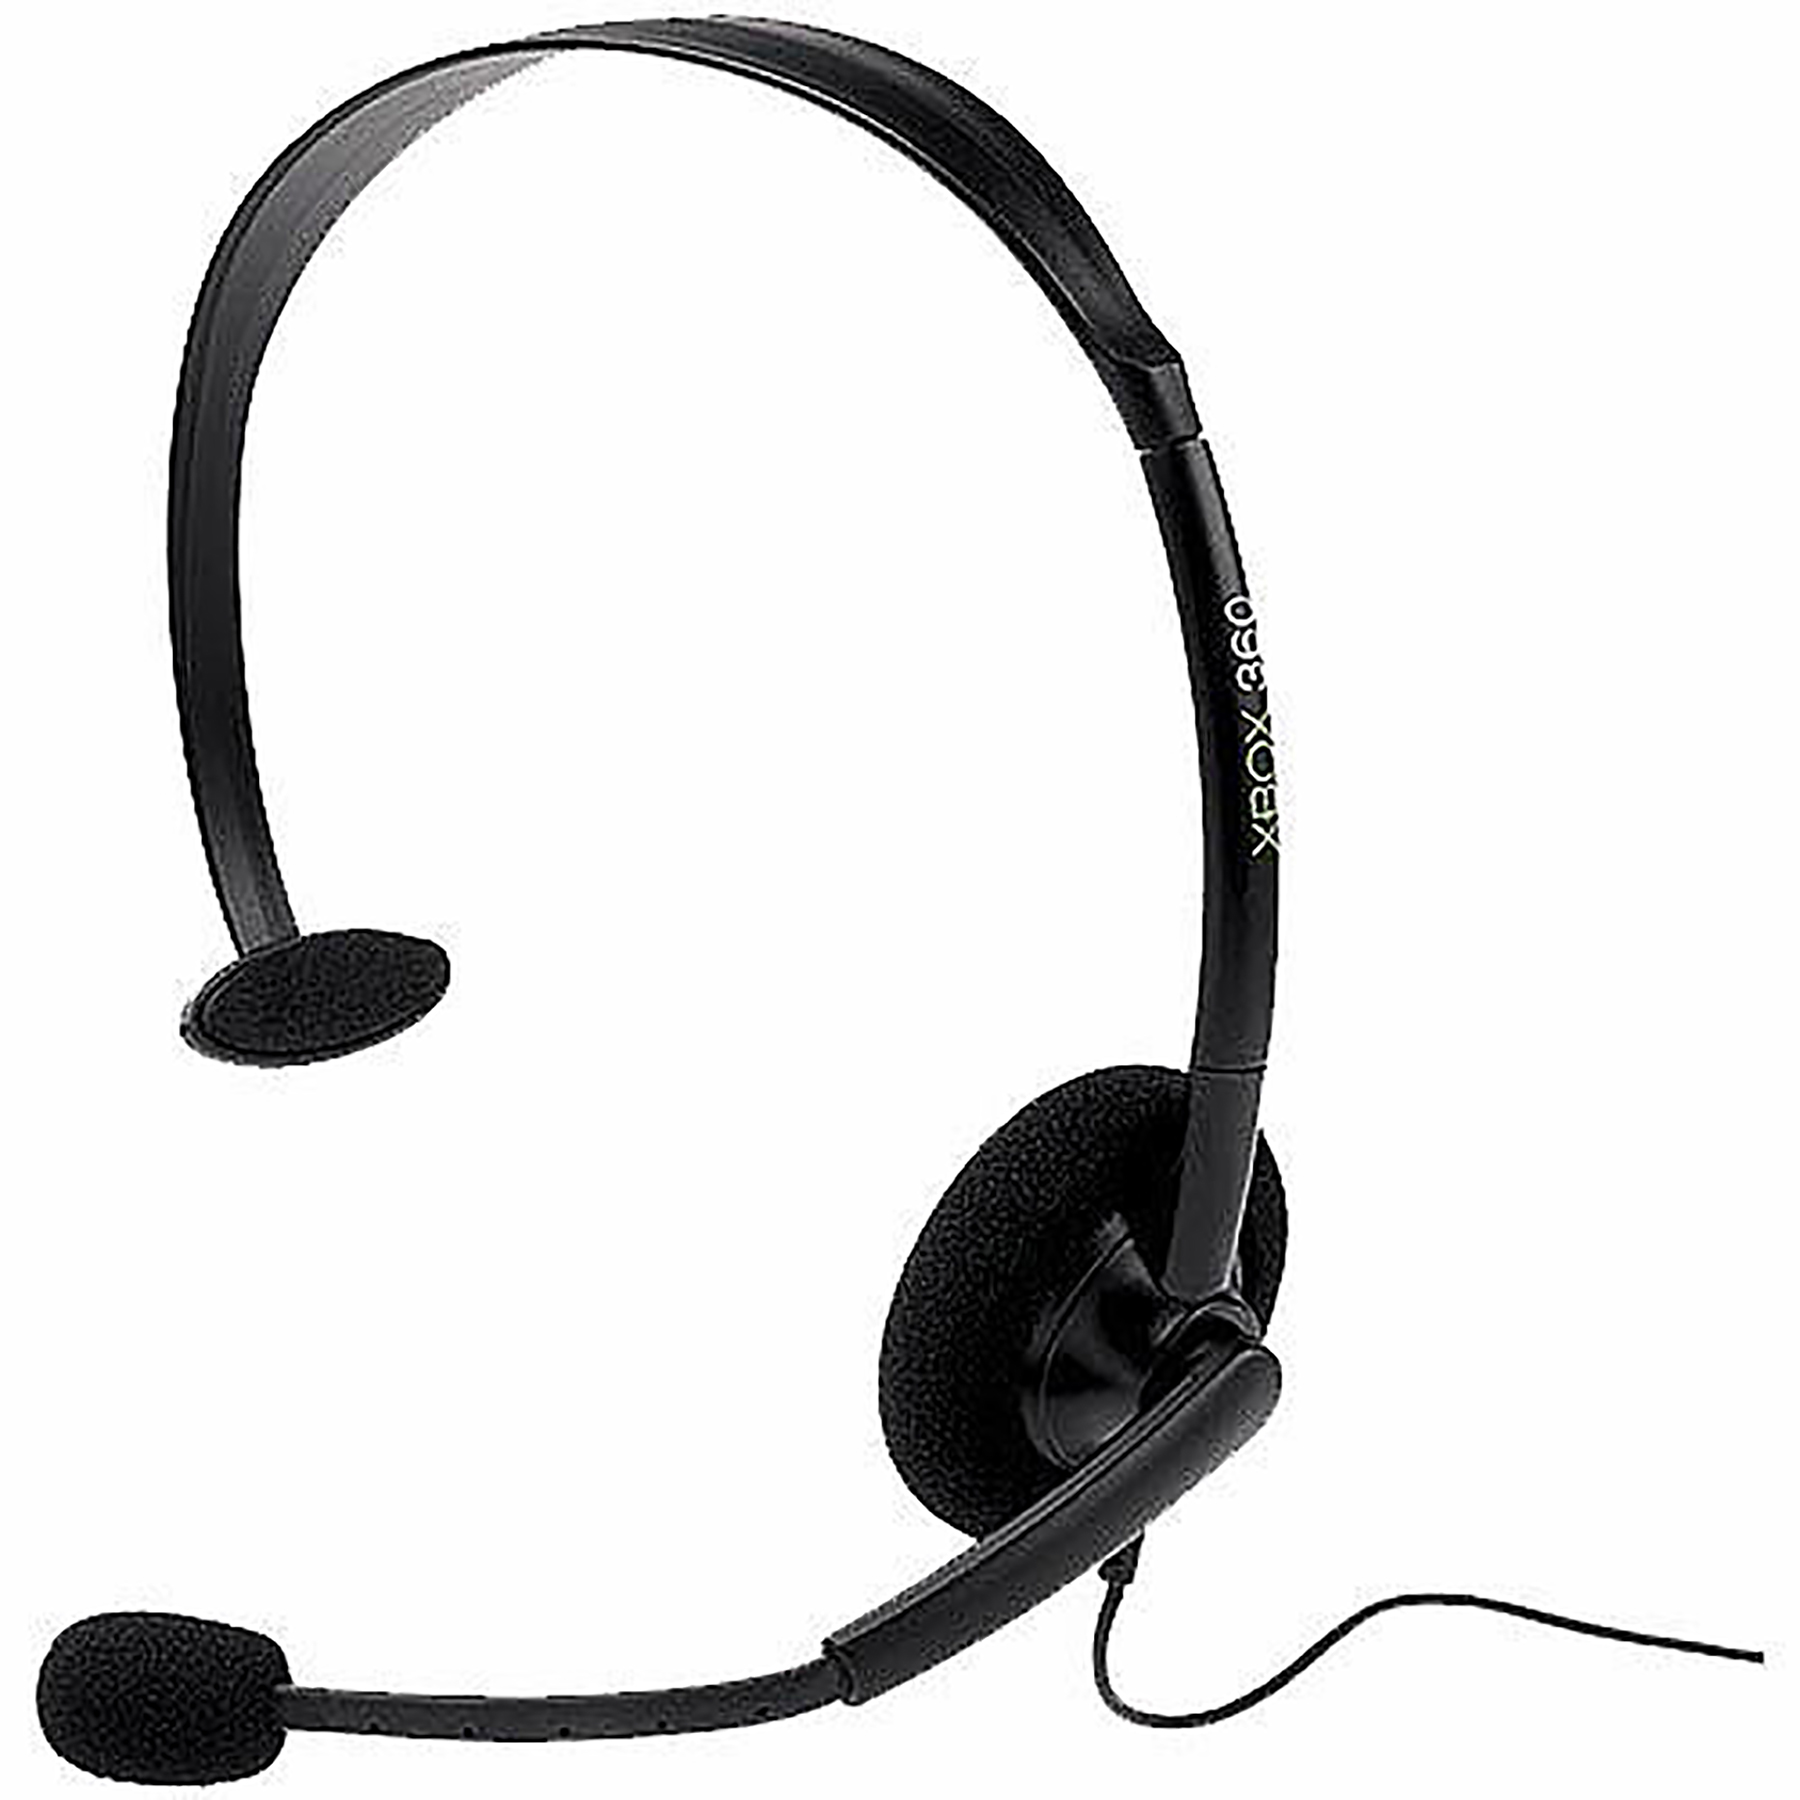 Xbox 360 – Headset – Wired – Black – New Bulk (Microsoft) – Game World